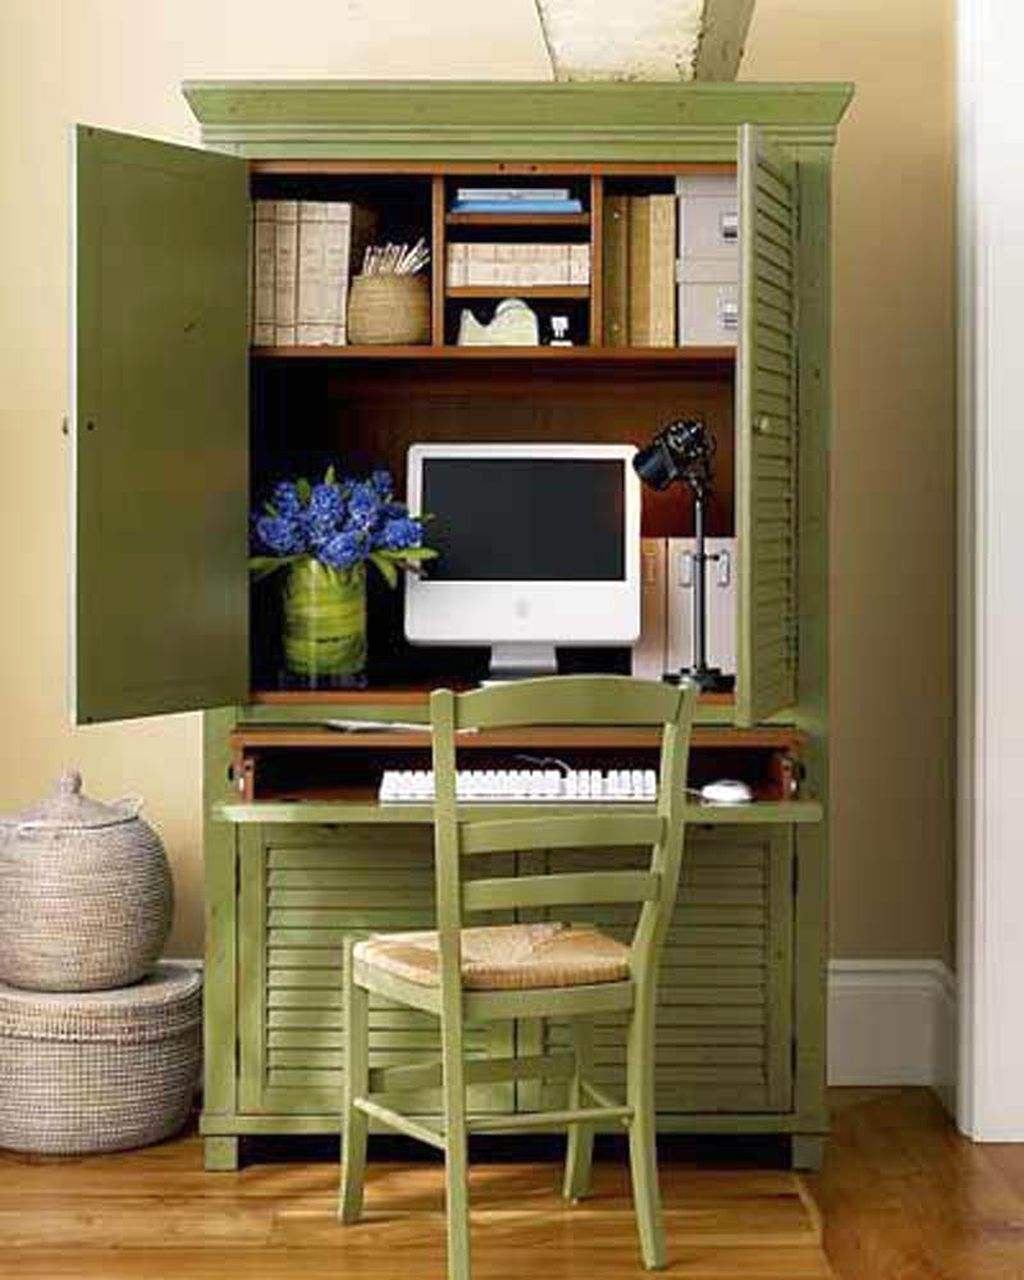 Green cupboard home office design ideas for small spaces for Small home office layout ideas